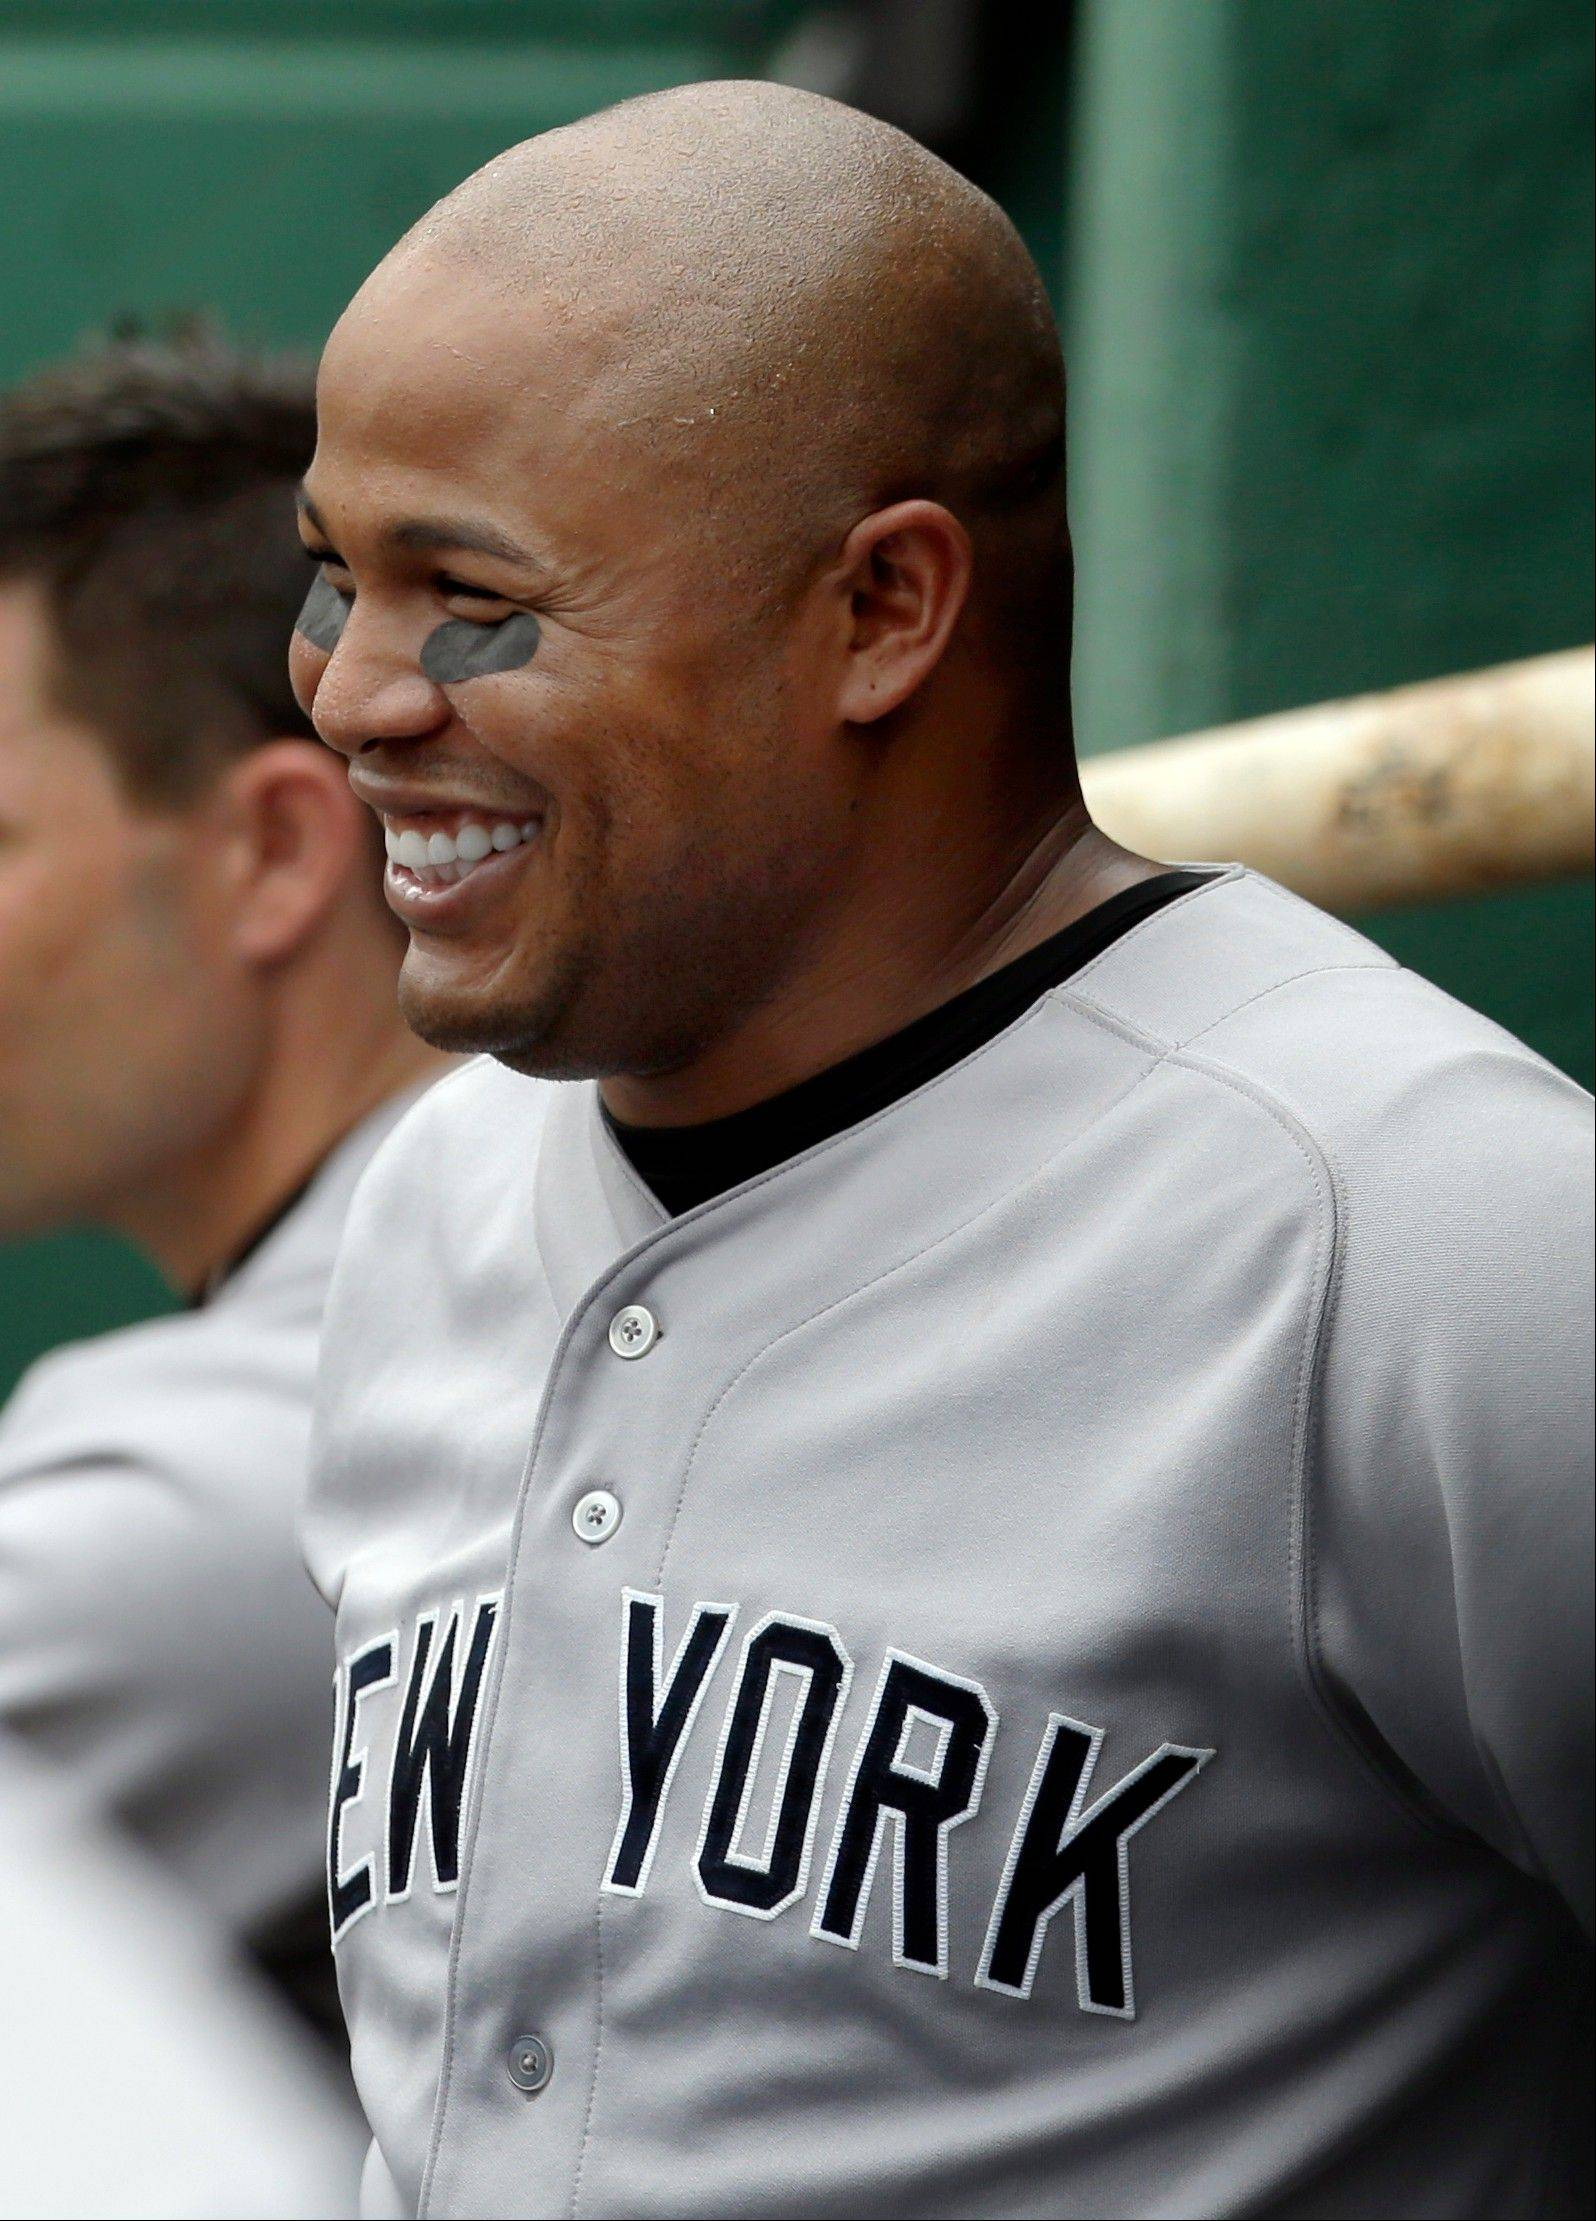 The New York Yankees� Andruw Jones smiles in the dugout Saturday after hitting his second solo home run against the Boston Red Sox during the fourth inning in the first game of a day-night doubleheader at Fenway Park in Boston.